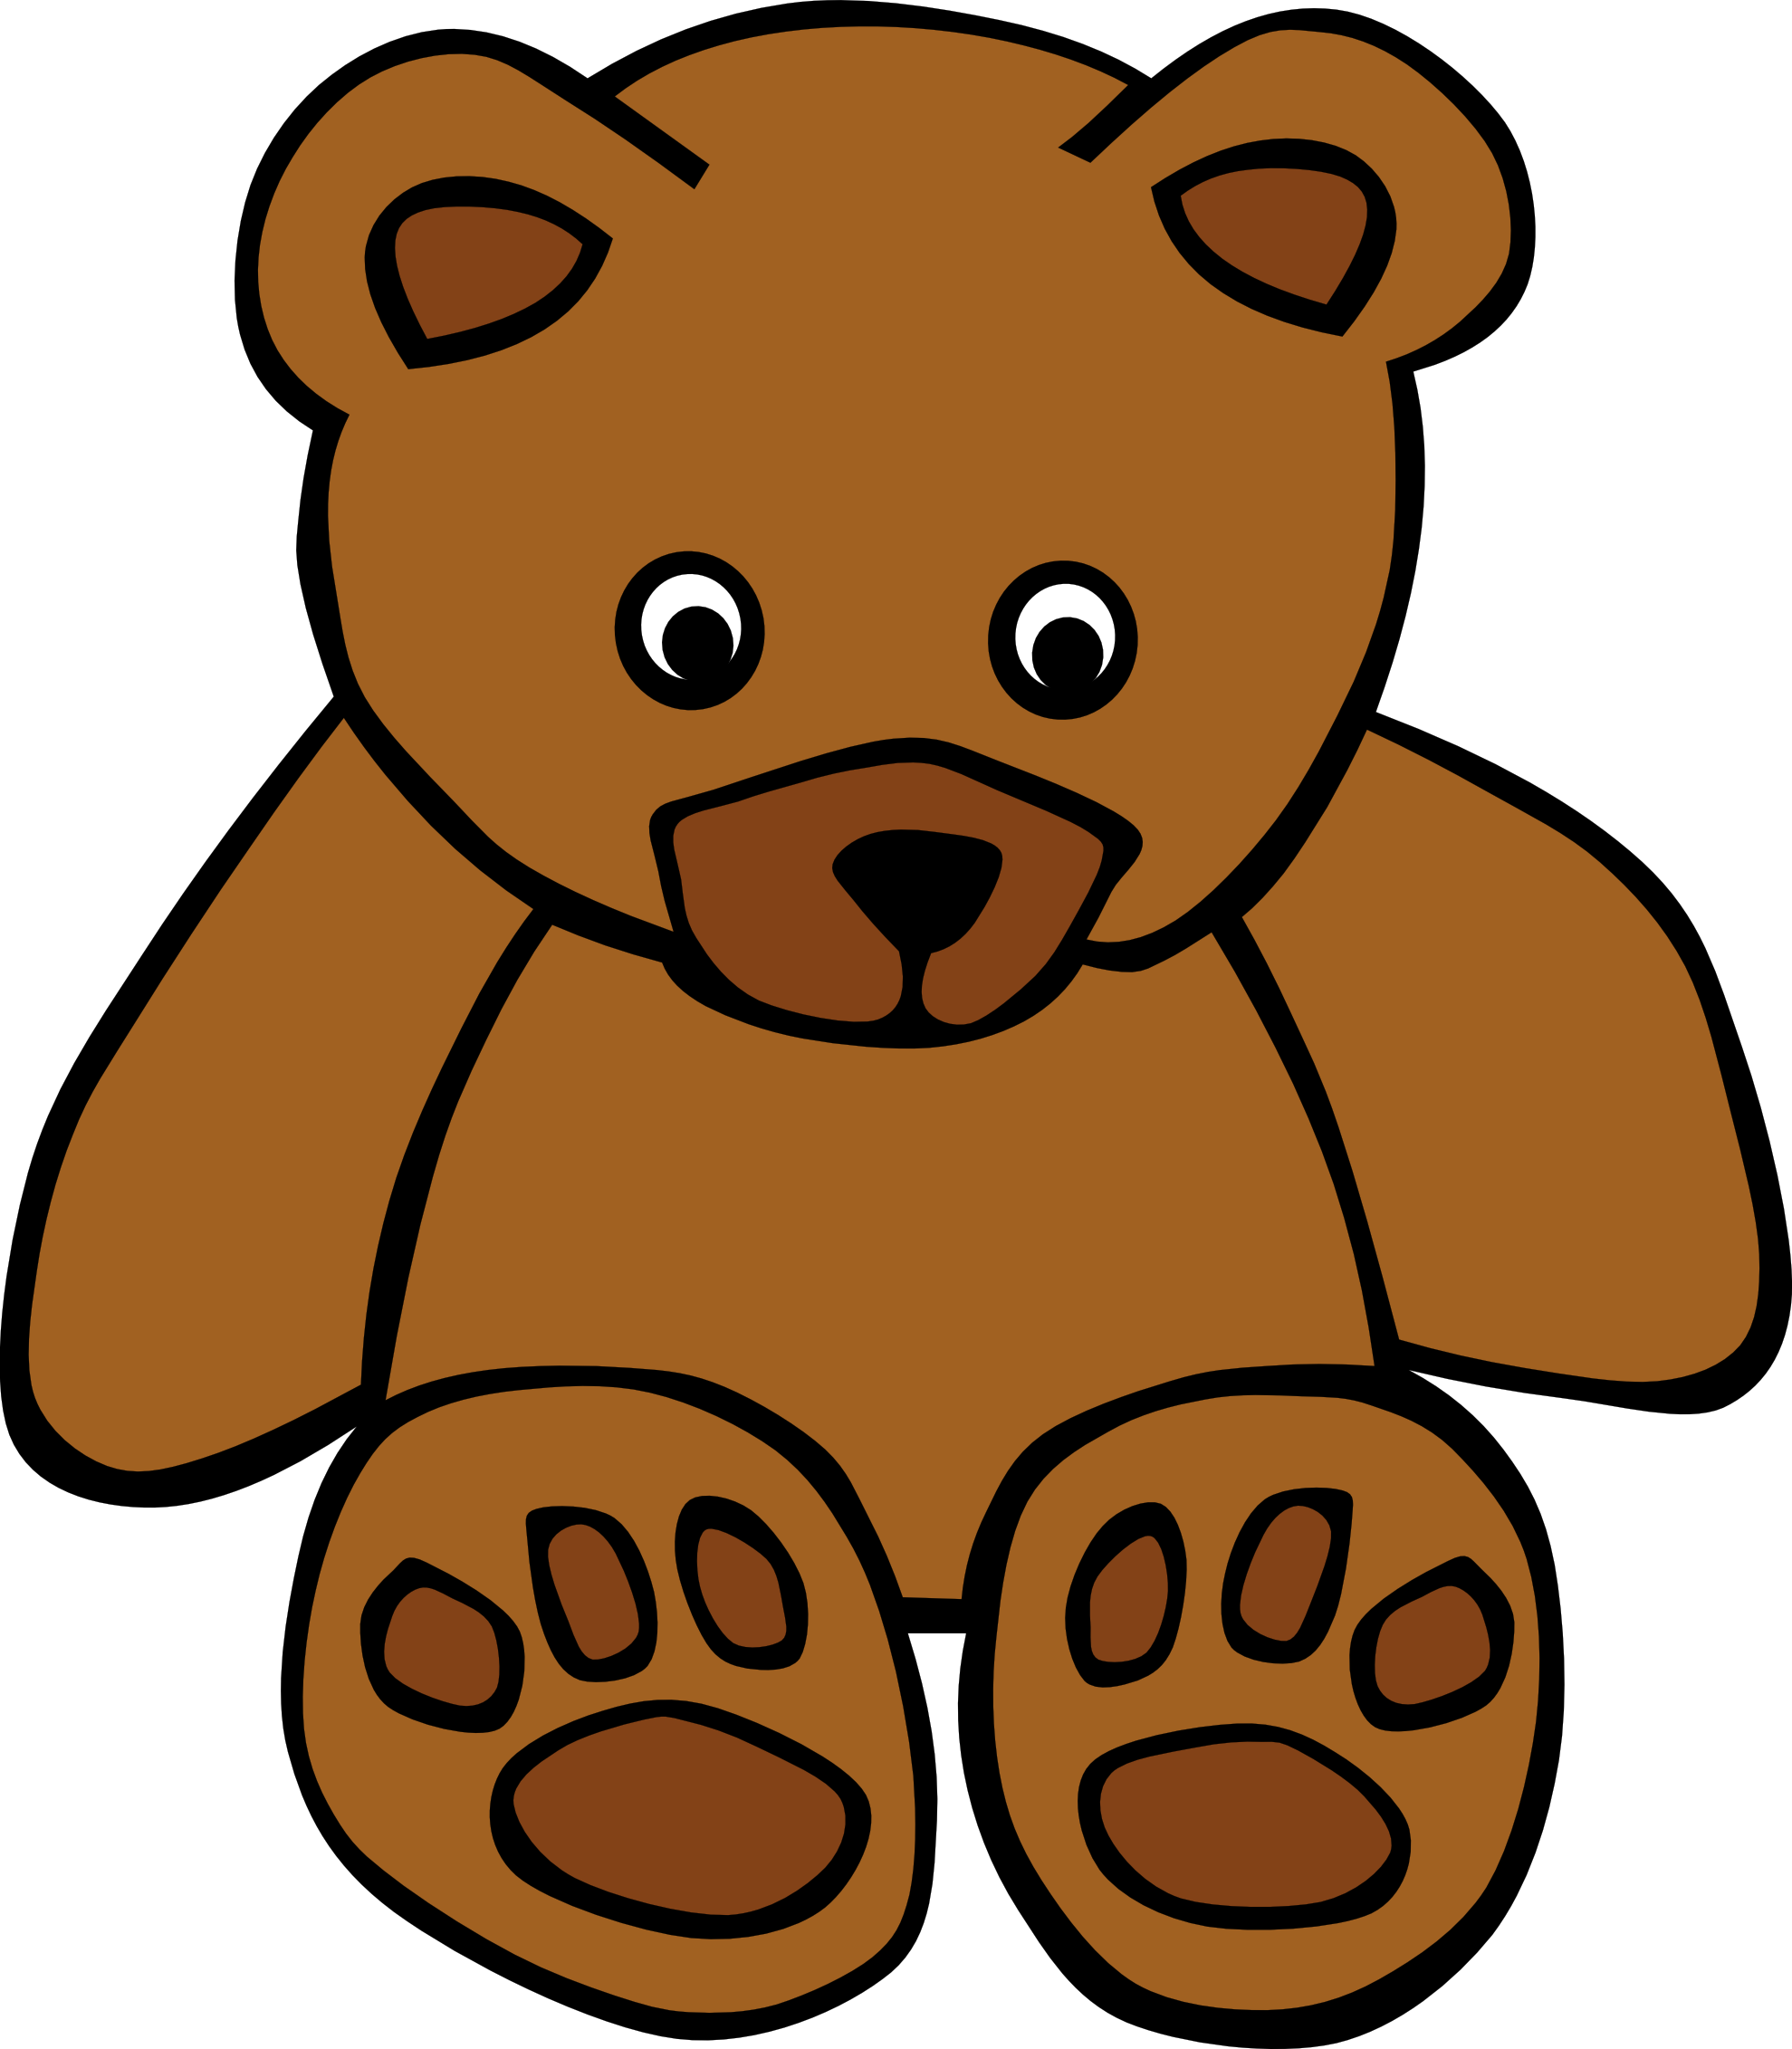 ear clipart teddy bear